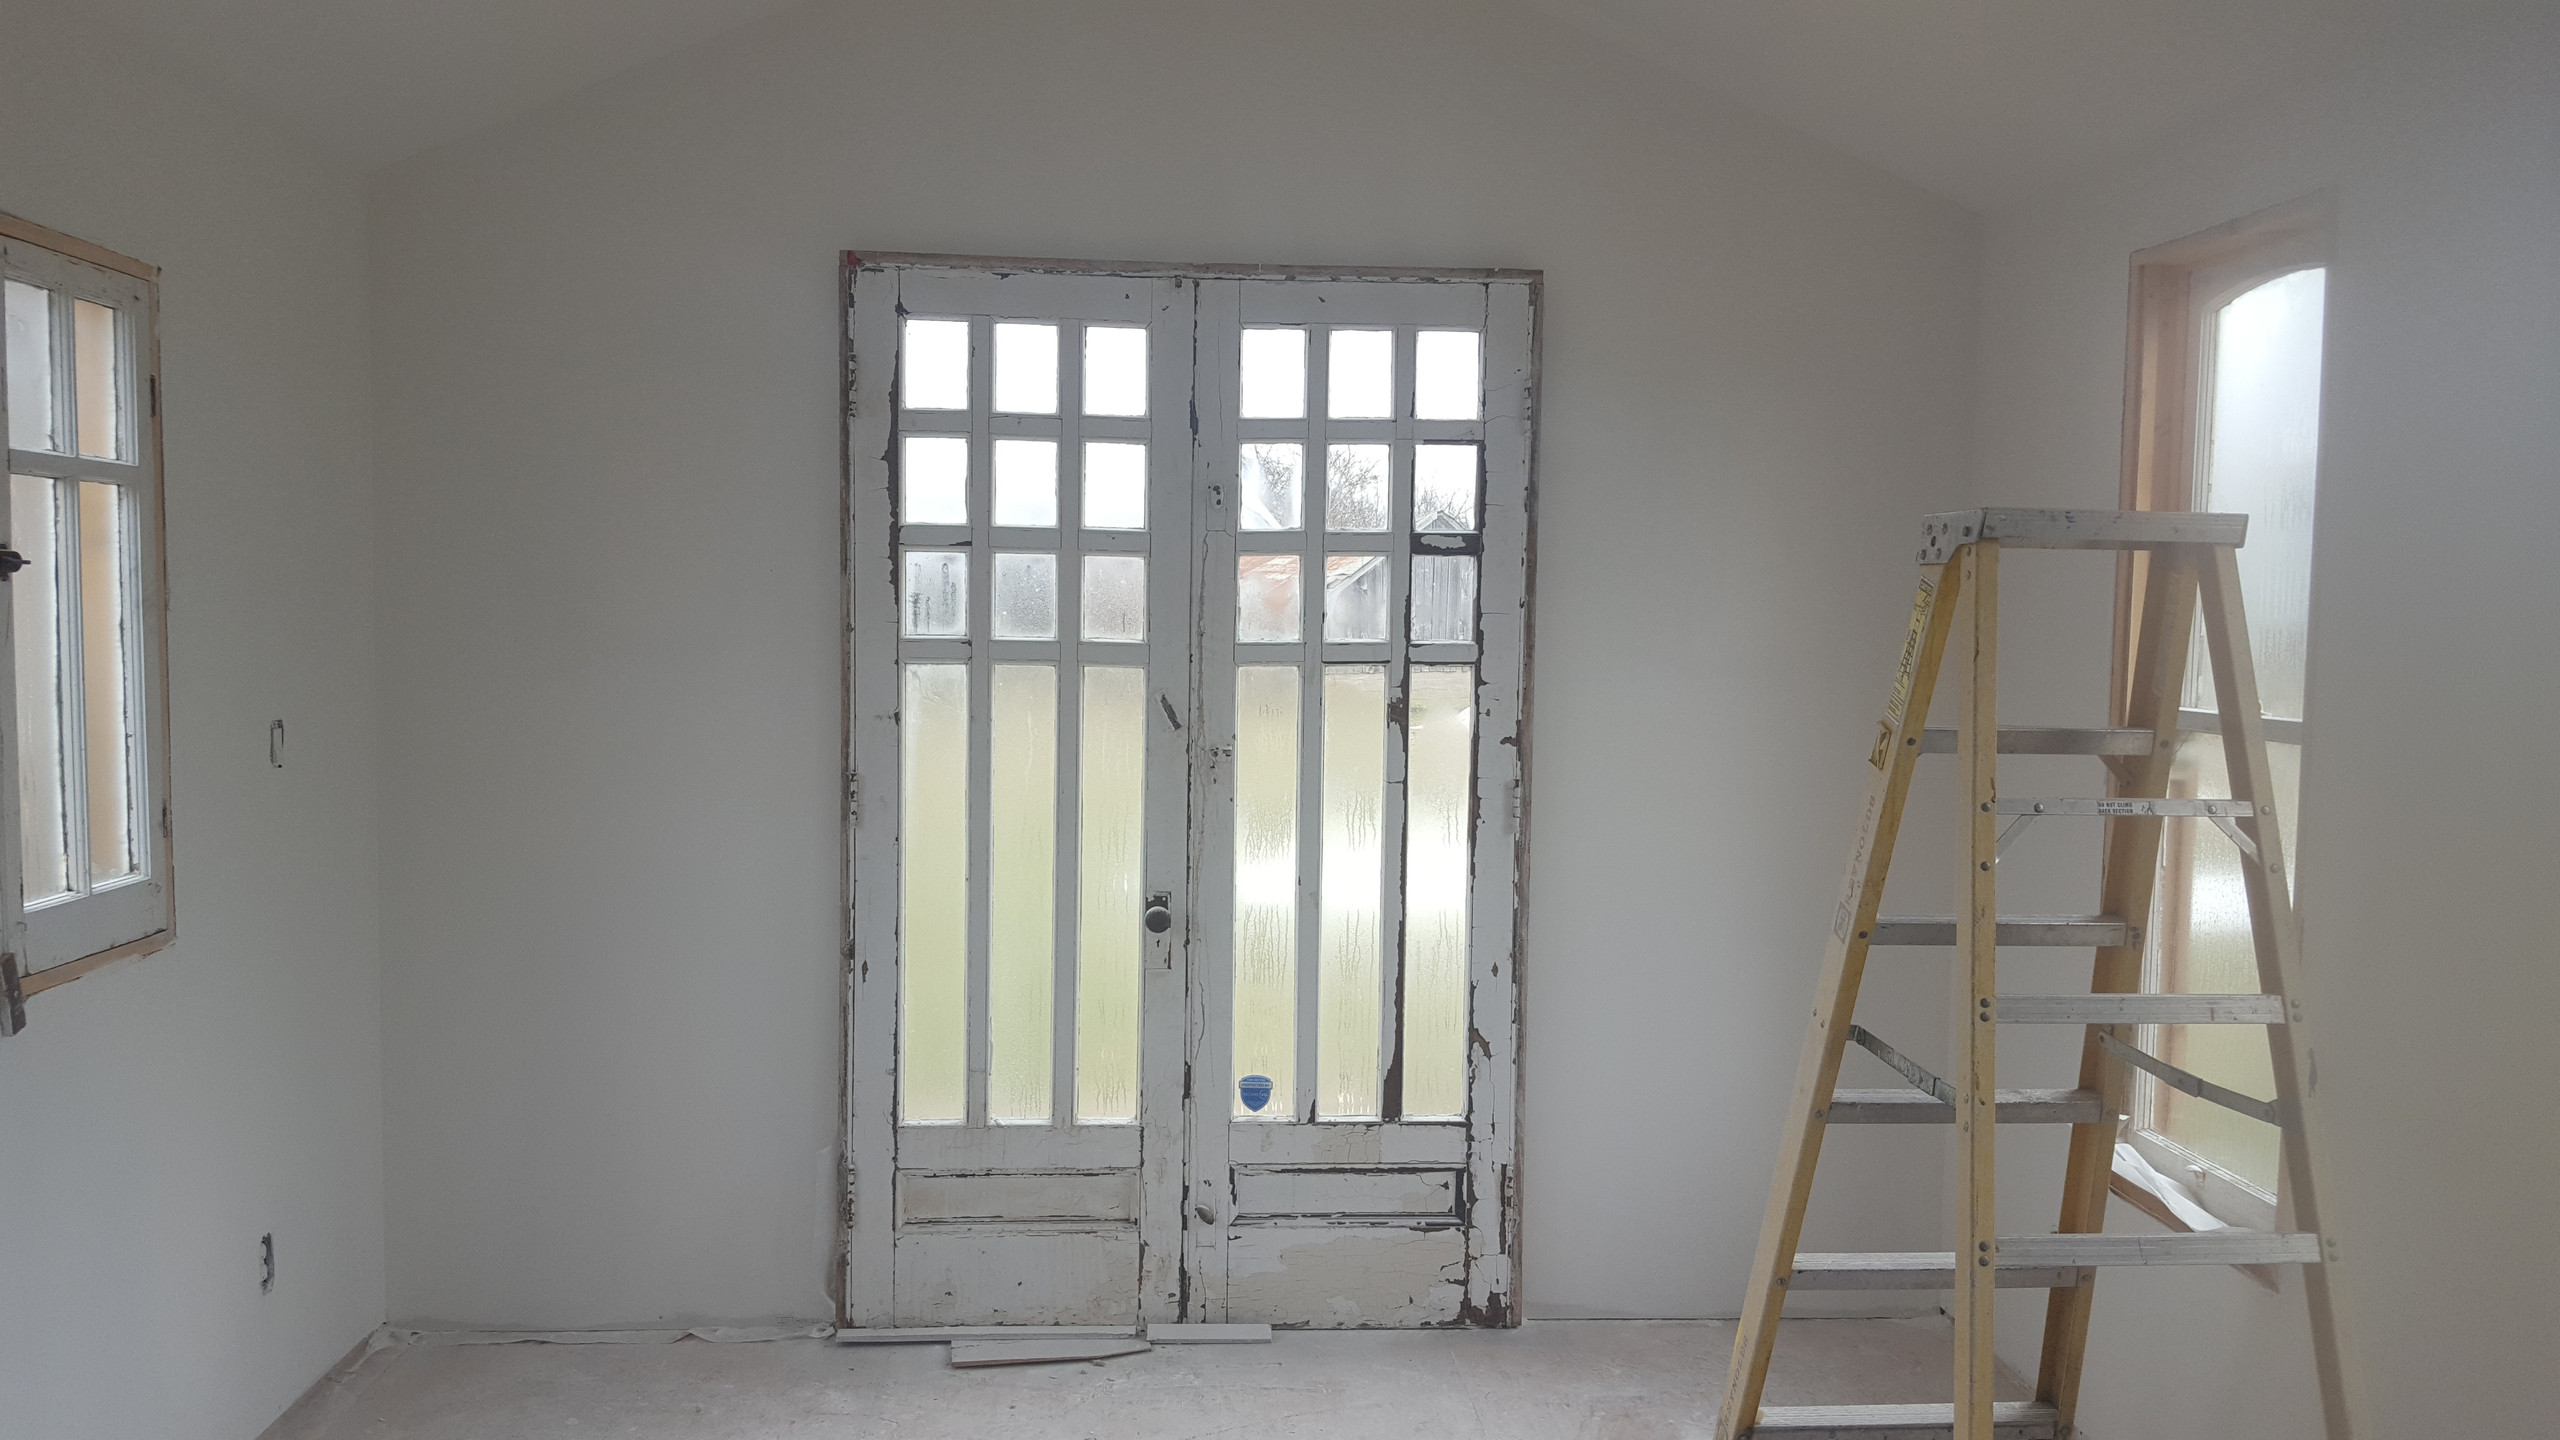 Antique french doors face east